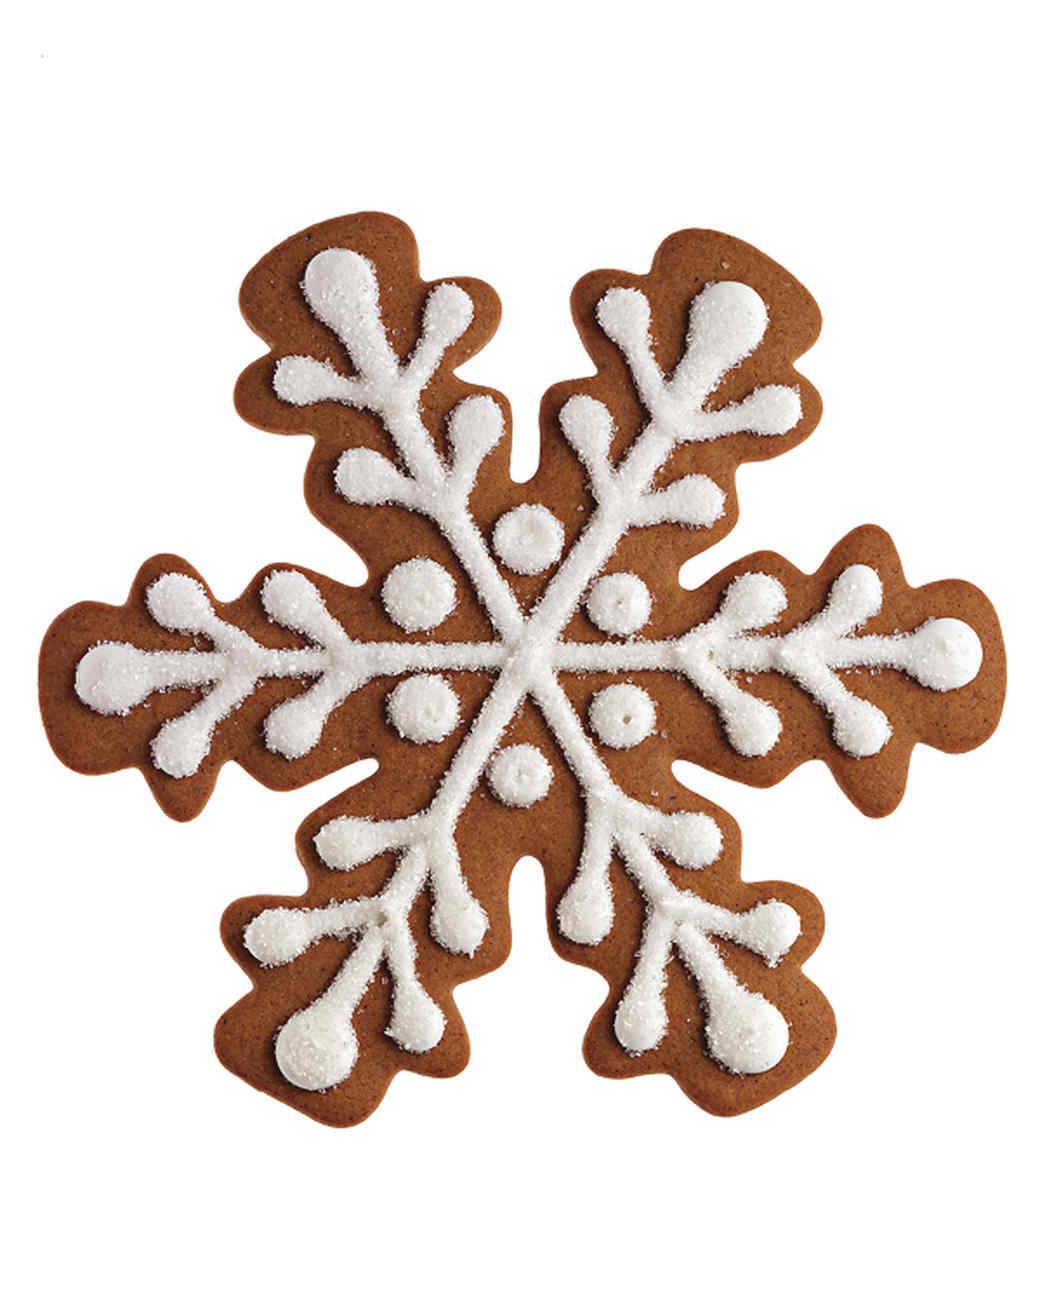 1040x1302 Iced, Decorated, And Shaped Cookie Recipes Martha Stewart